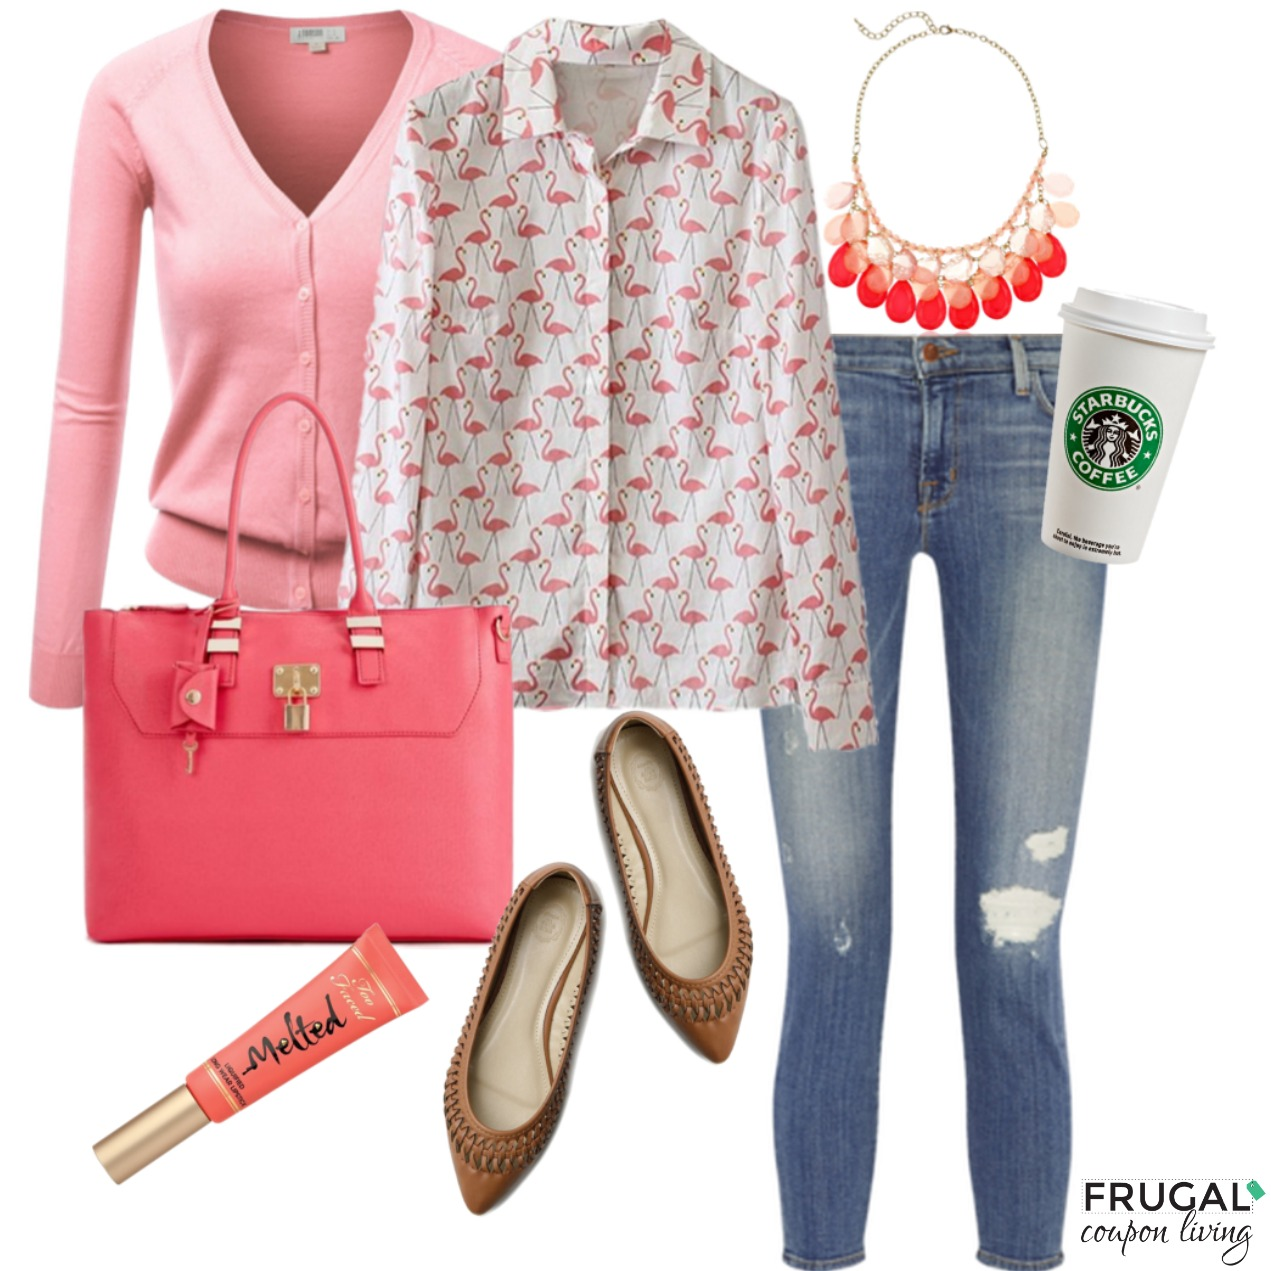 peach-outfit-frugal-fashion-friday-frugal-coupon-living-outfit